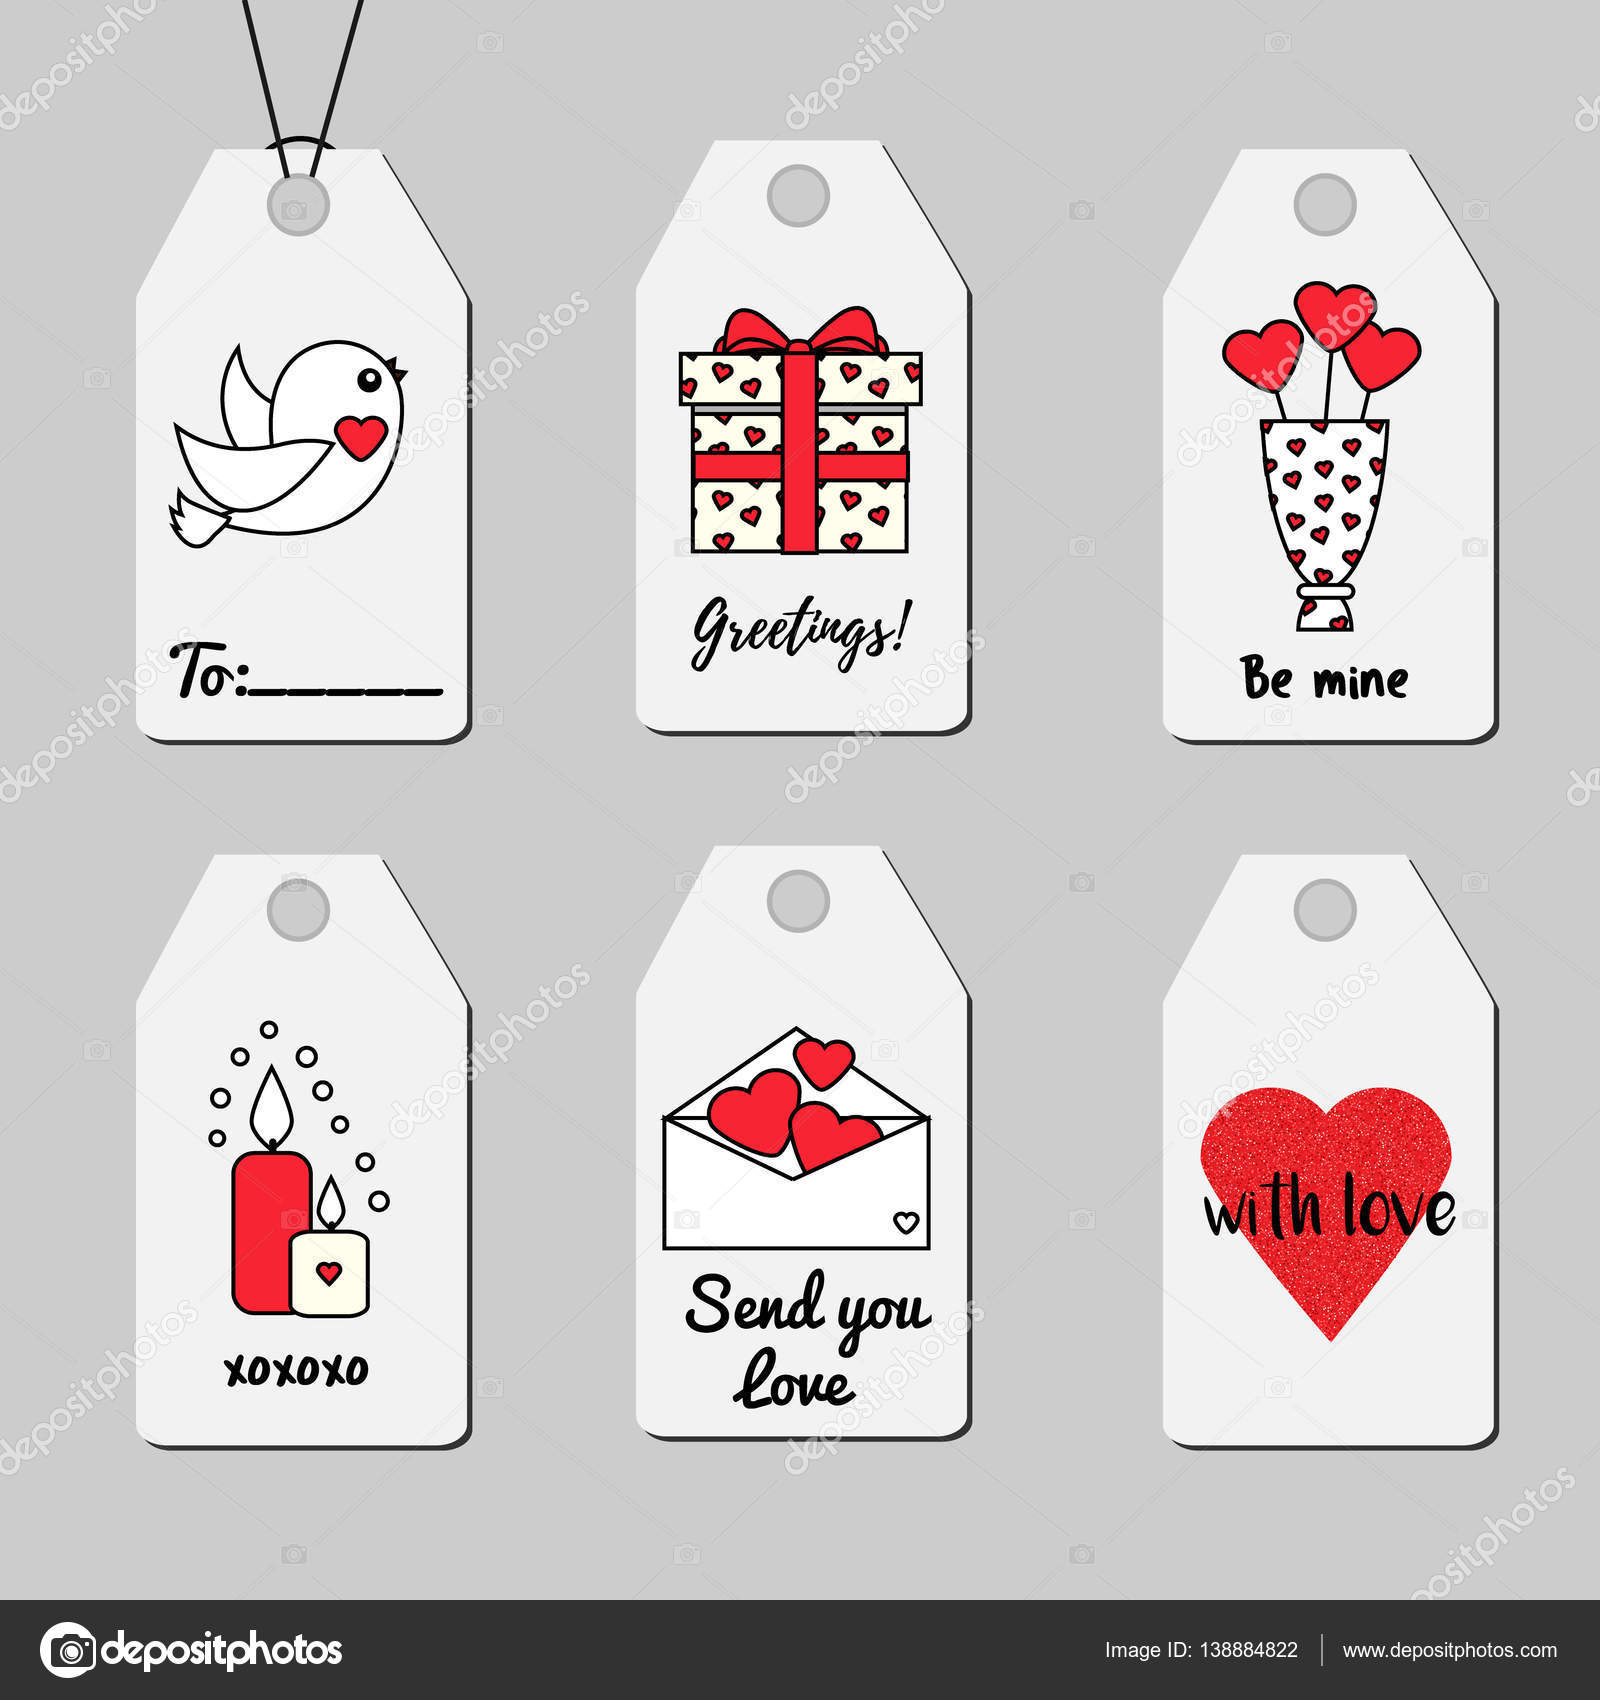 Gmail love theme - Shopping And Sale Printable Tags Vector Collection Romantic Love Theme Hearts Candles Gift Box And Other Symbols Vector By Bonnyheize Gmail Com